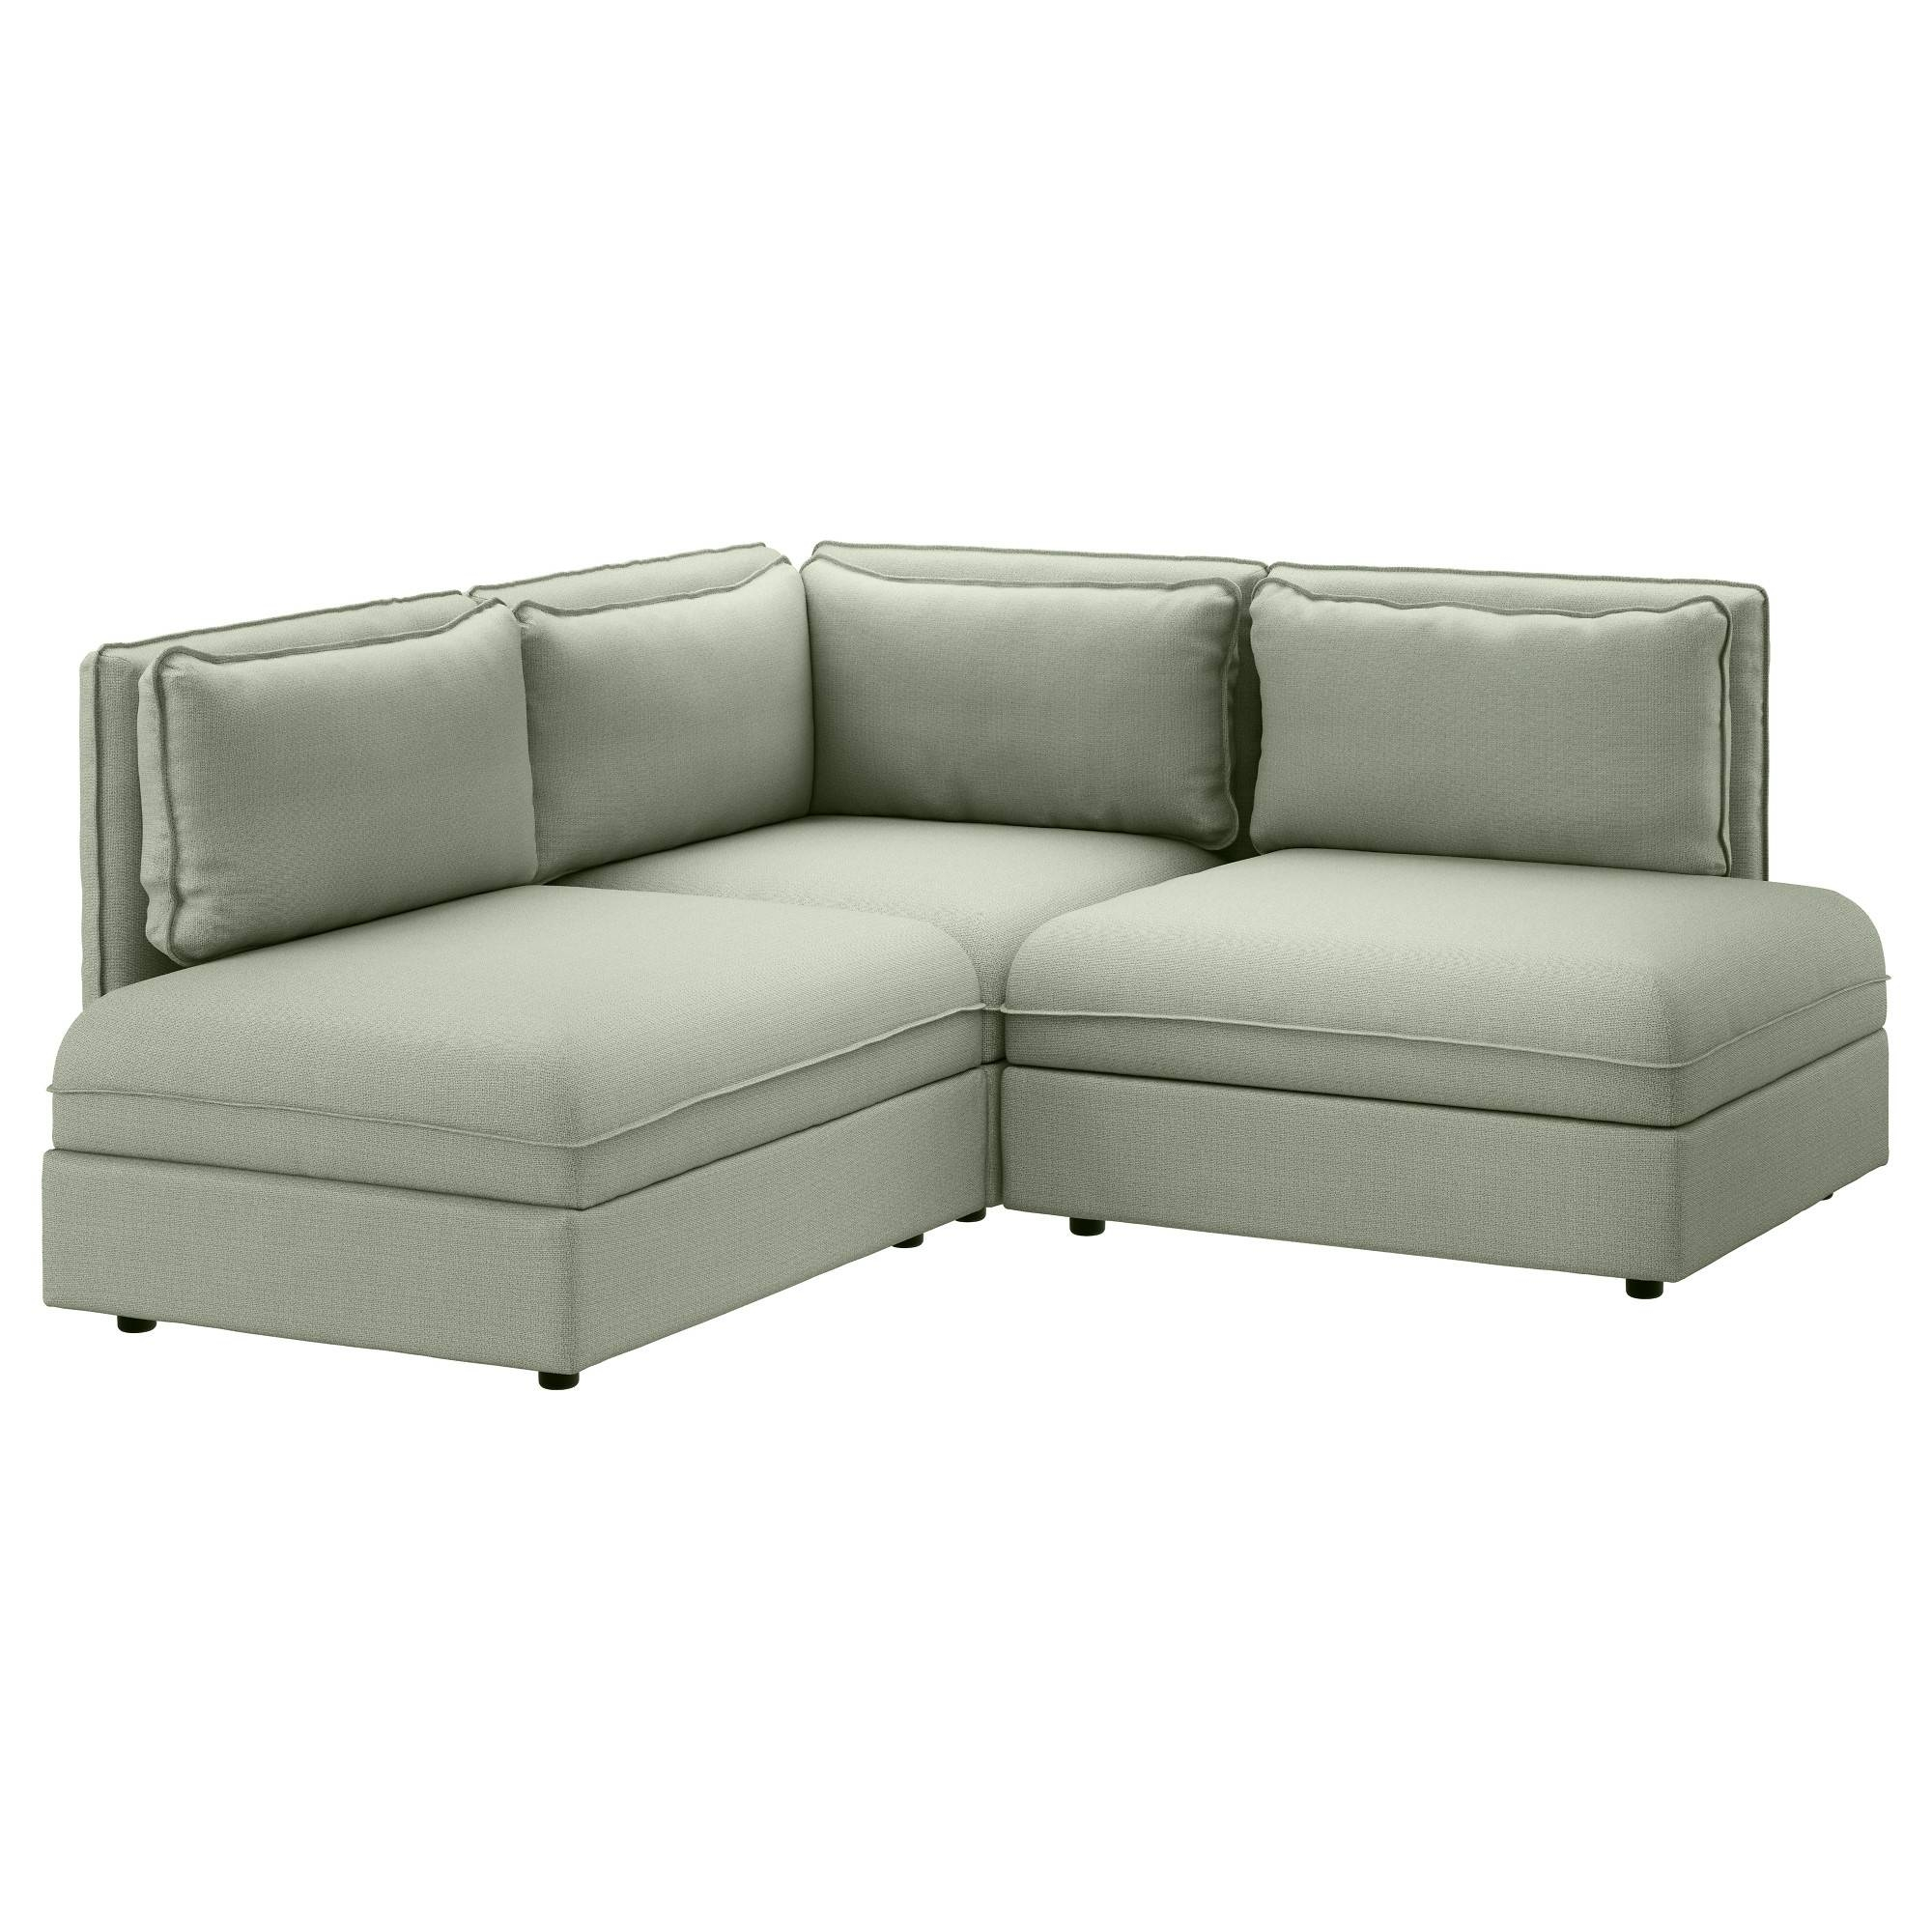 Modular Sofas & Sectionals - Ikea for American Made Sectional Sofas (Image 17 of 30)